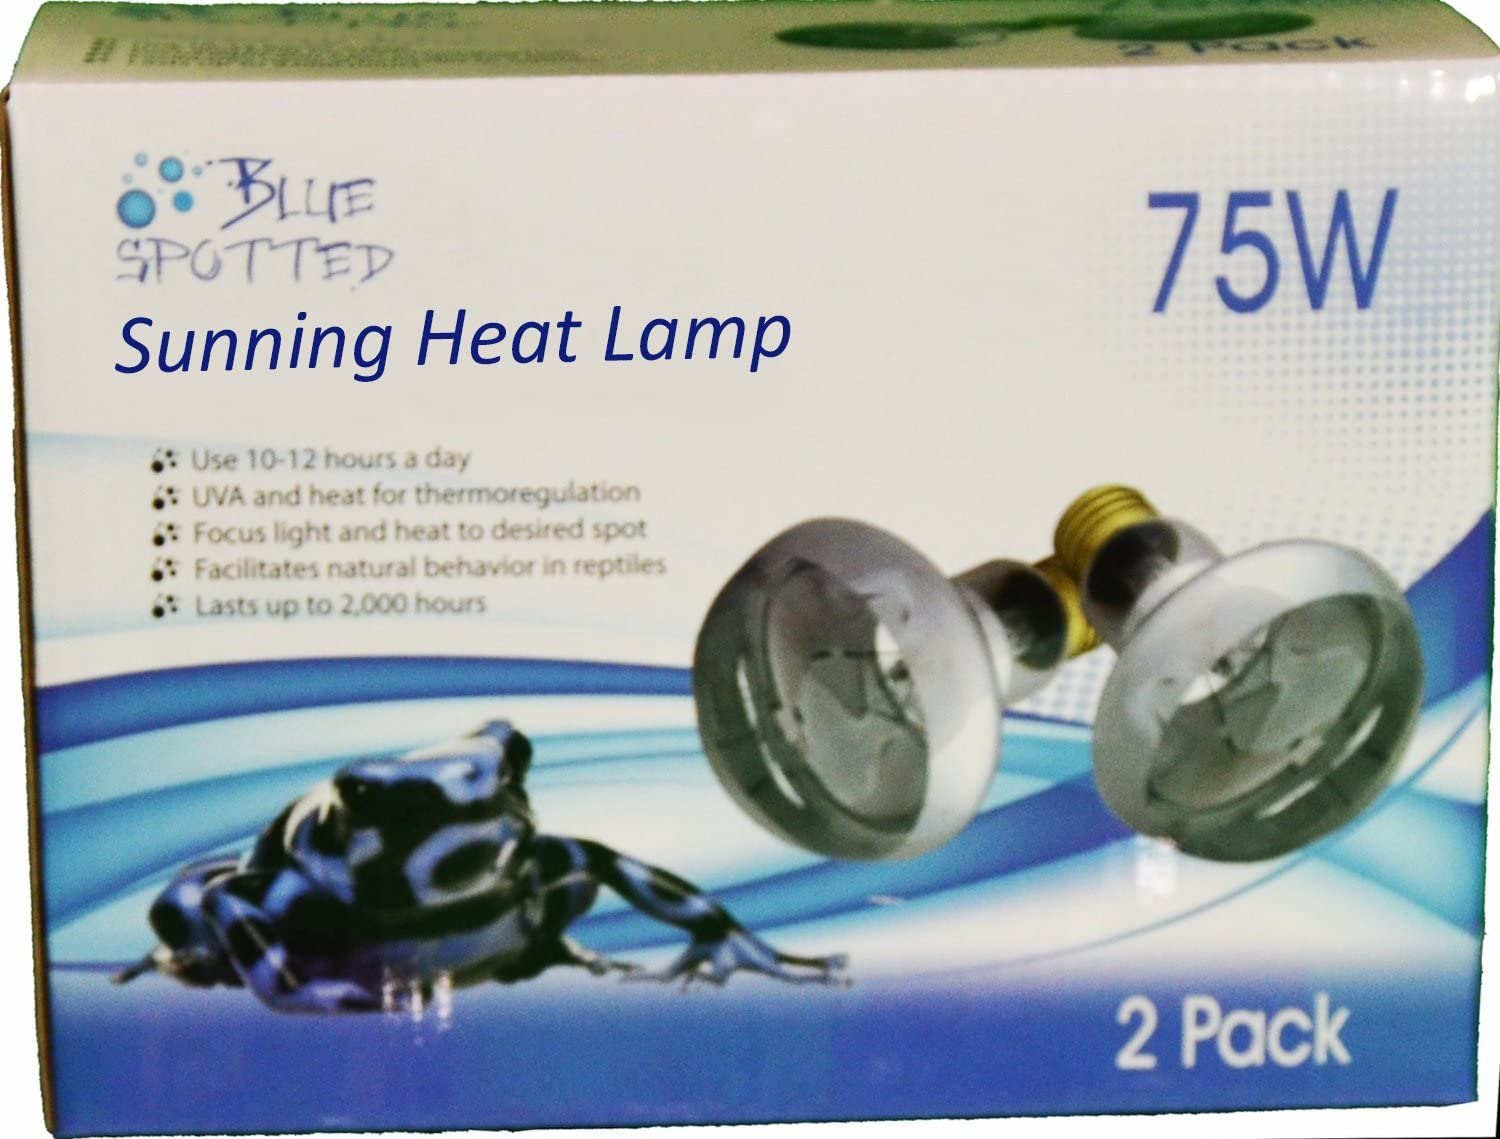 Sunning Heat Lamps, 75 Watt (1 Value Pack) for Use with Terrariums and Provided A Basking Lamp Reptiles, Amphibians, Small Animals, Birds, and Farm Animals